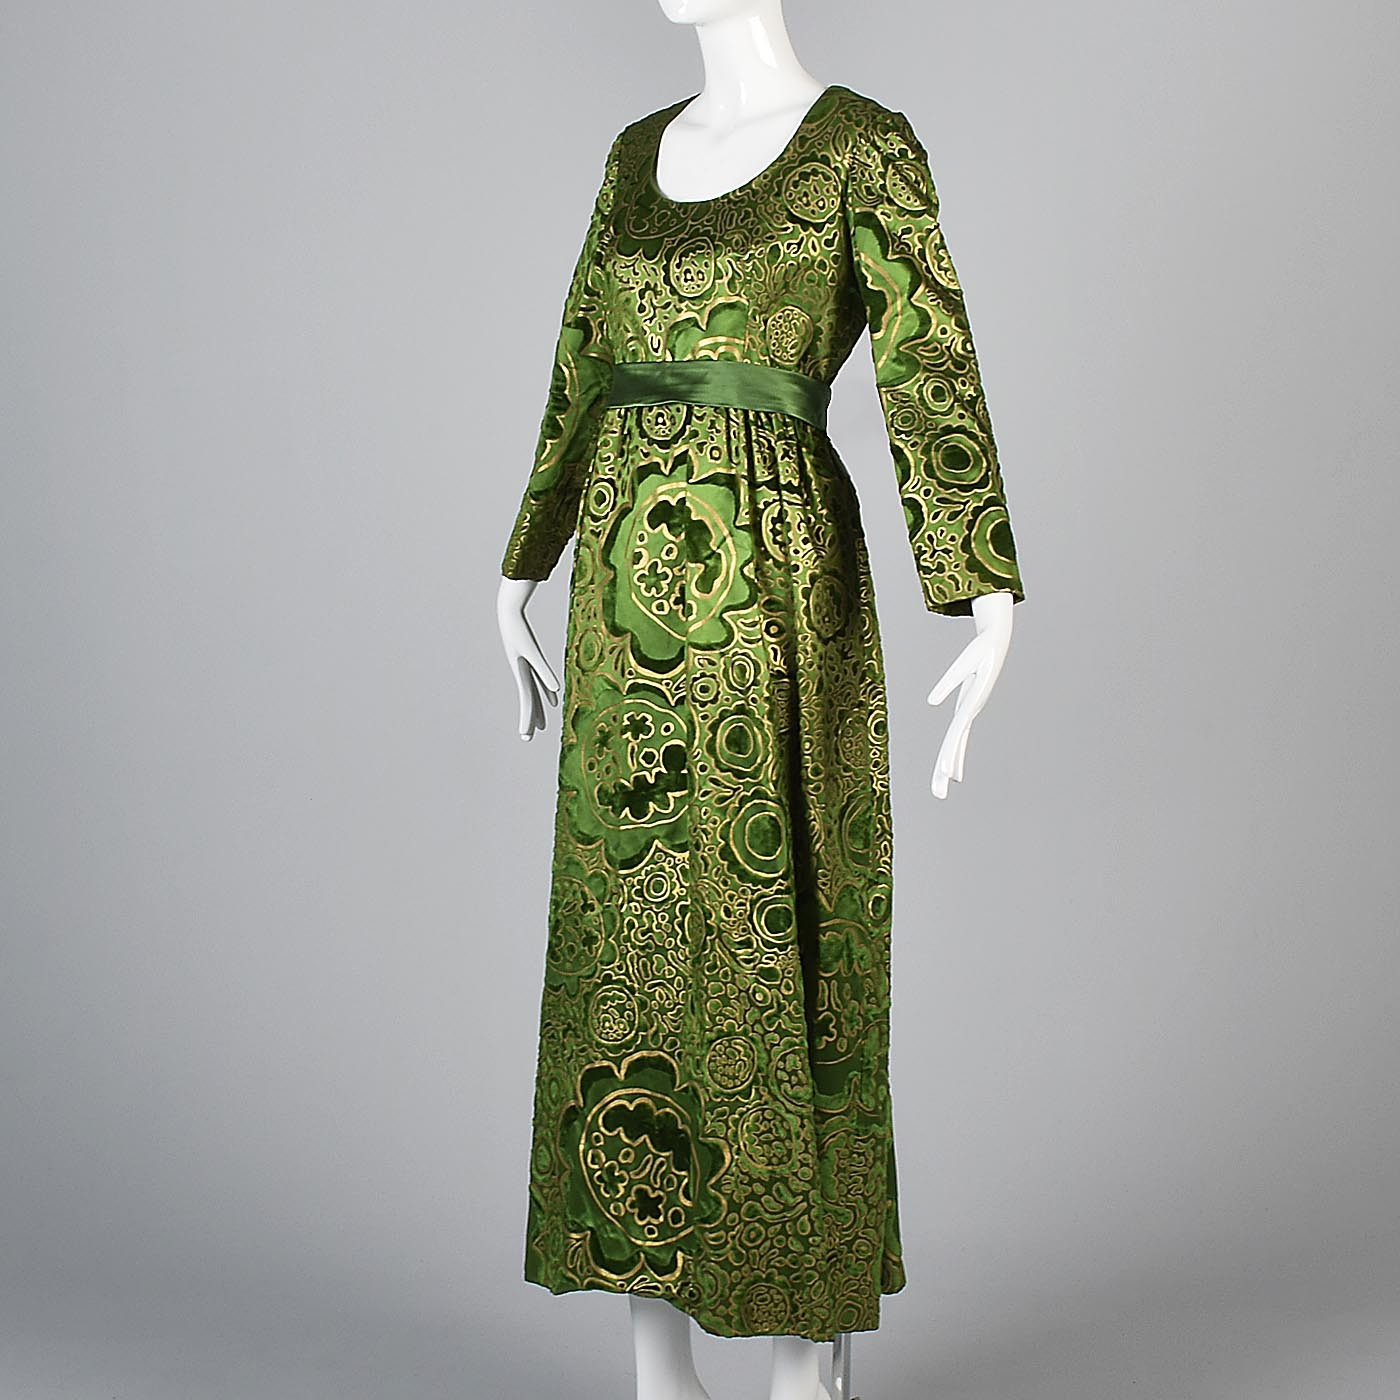 1970s Emerald Green Silk Lisa Meril Tissu Staron Evening Dress with Velvet Flocking & Gold Hand Painted Design